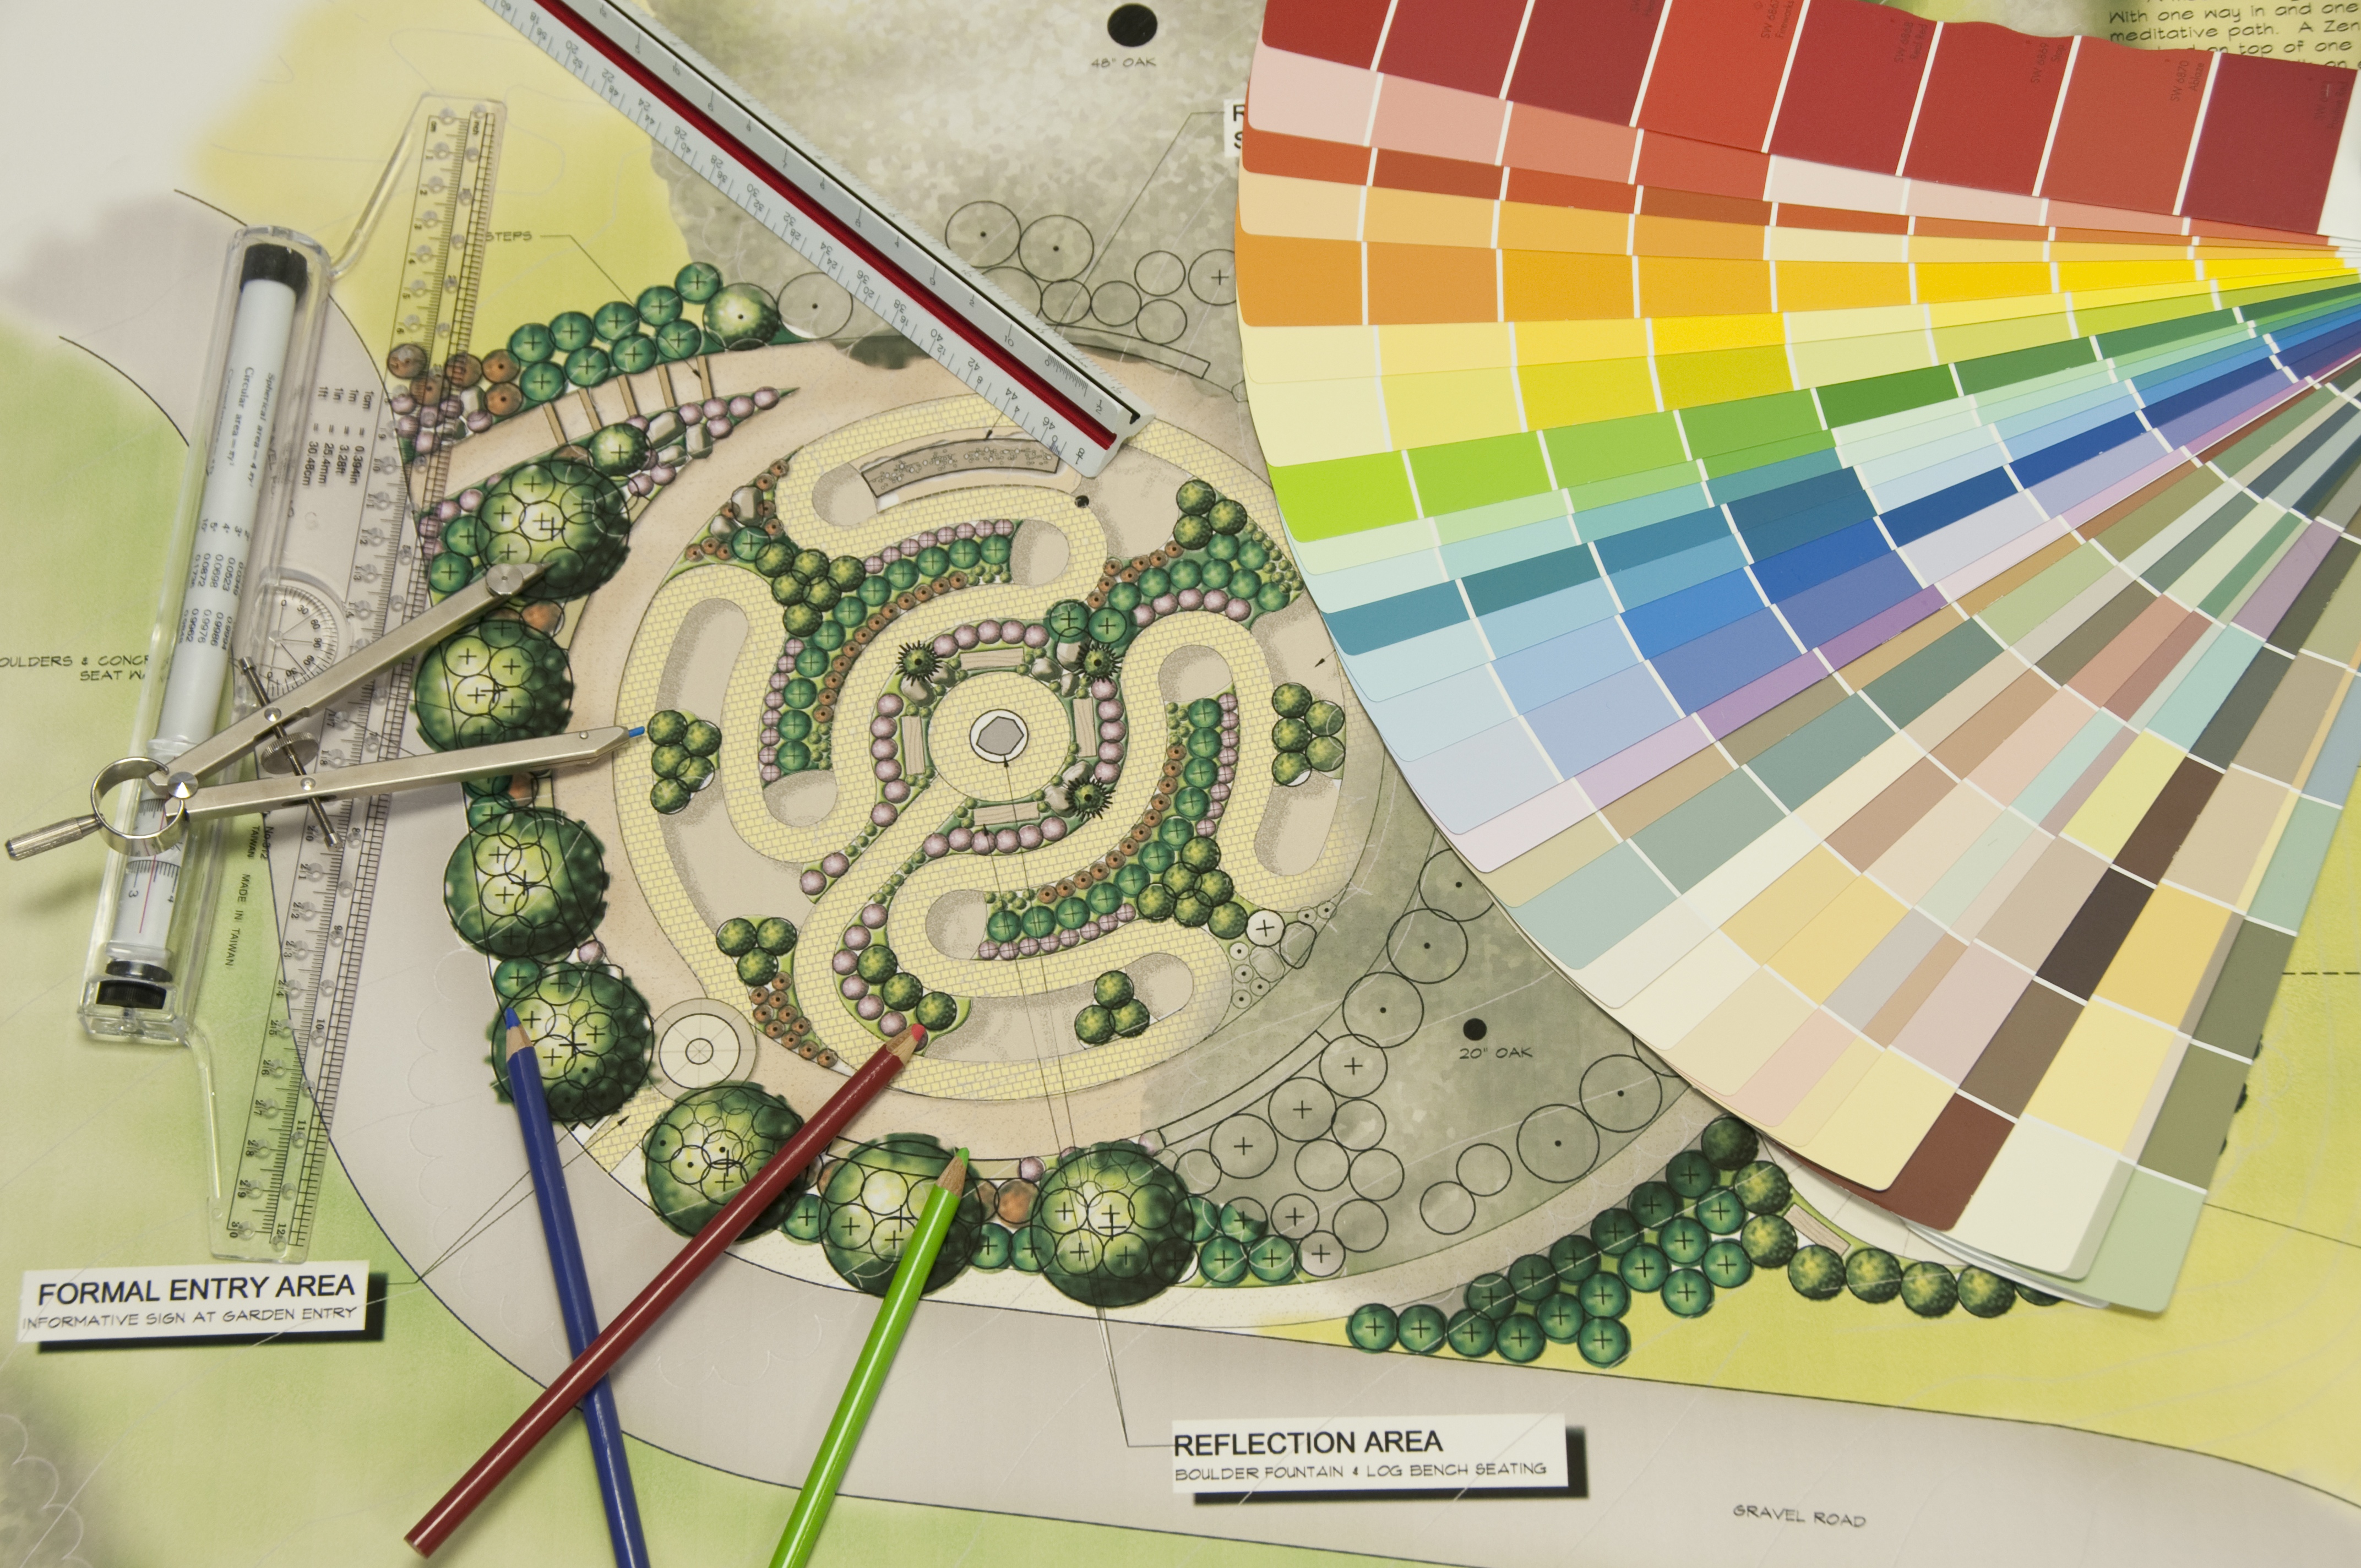 Labyrinth landscape design with a color wheel and drafting tools